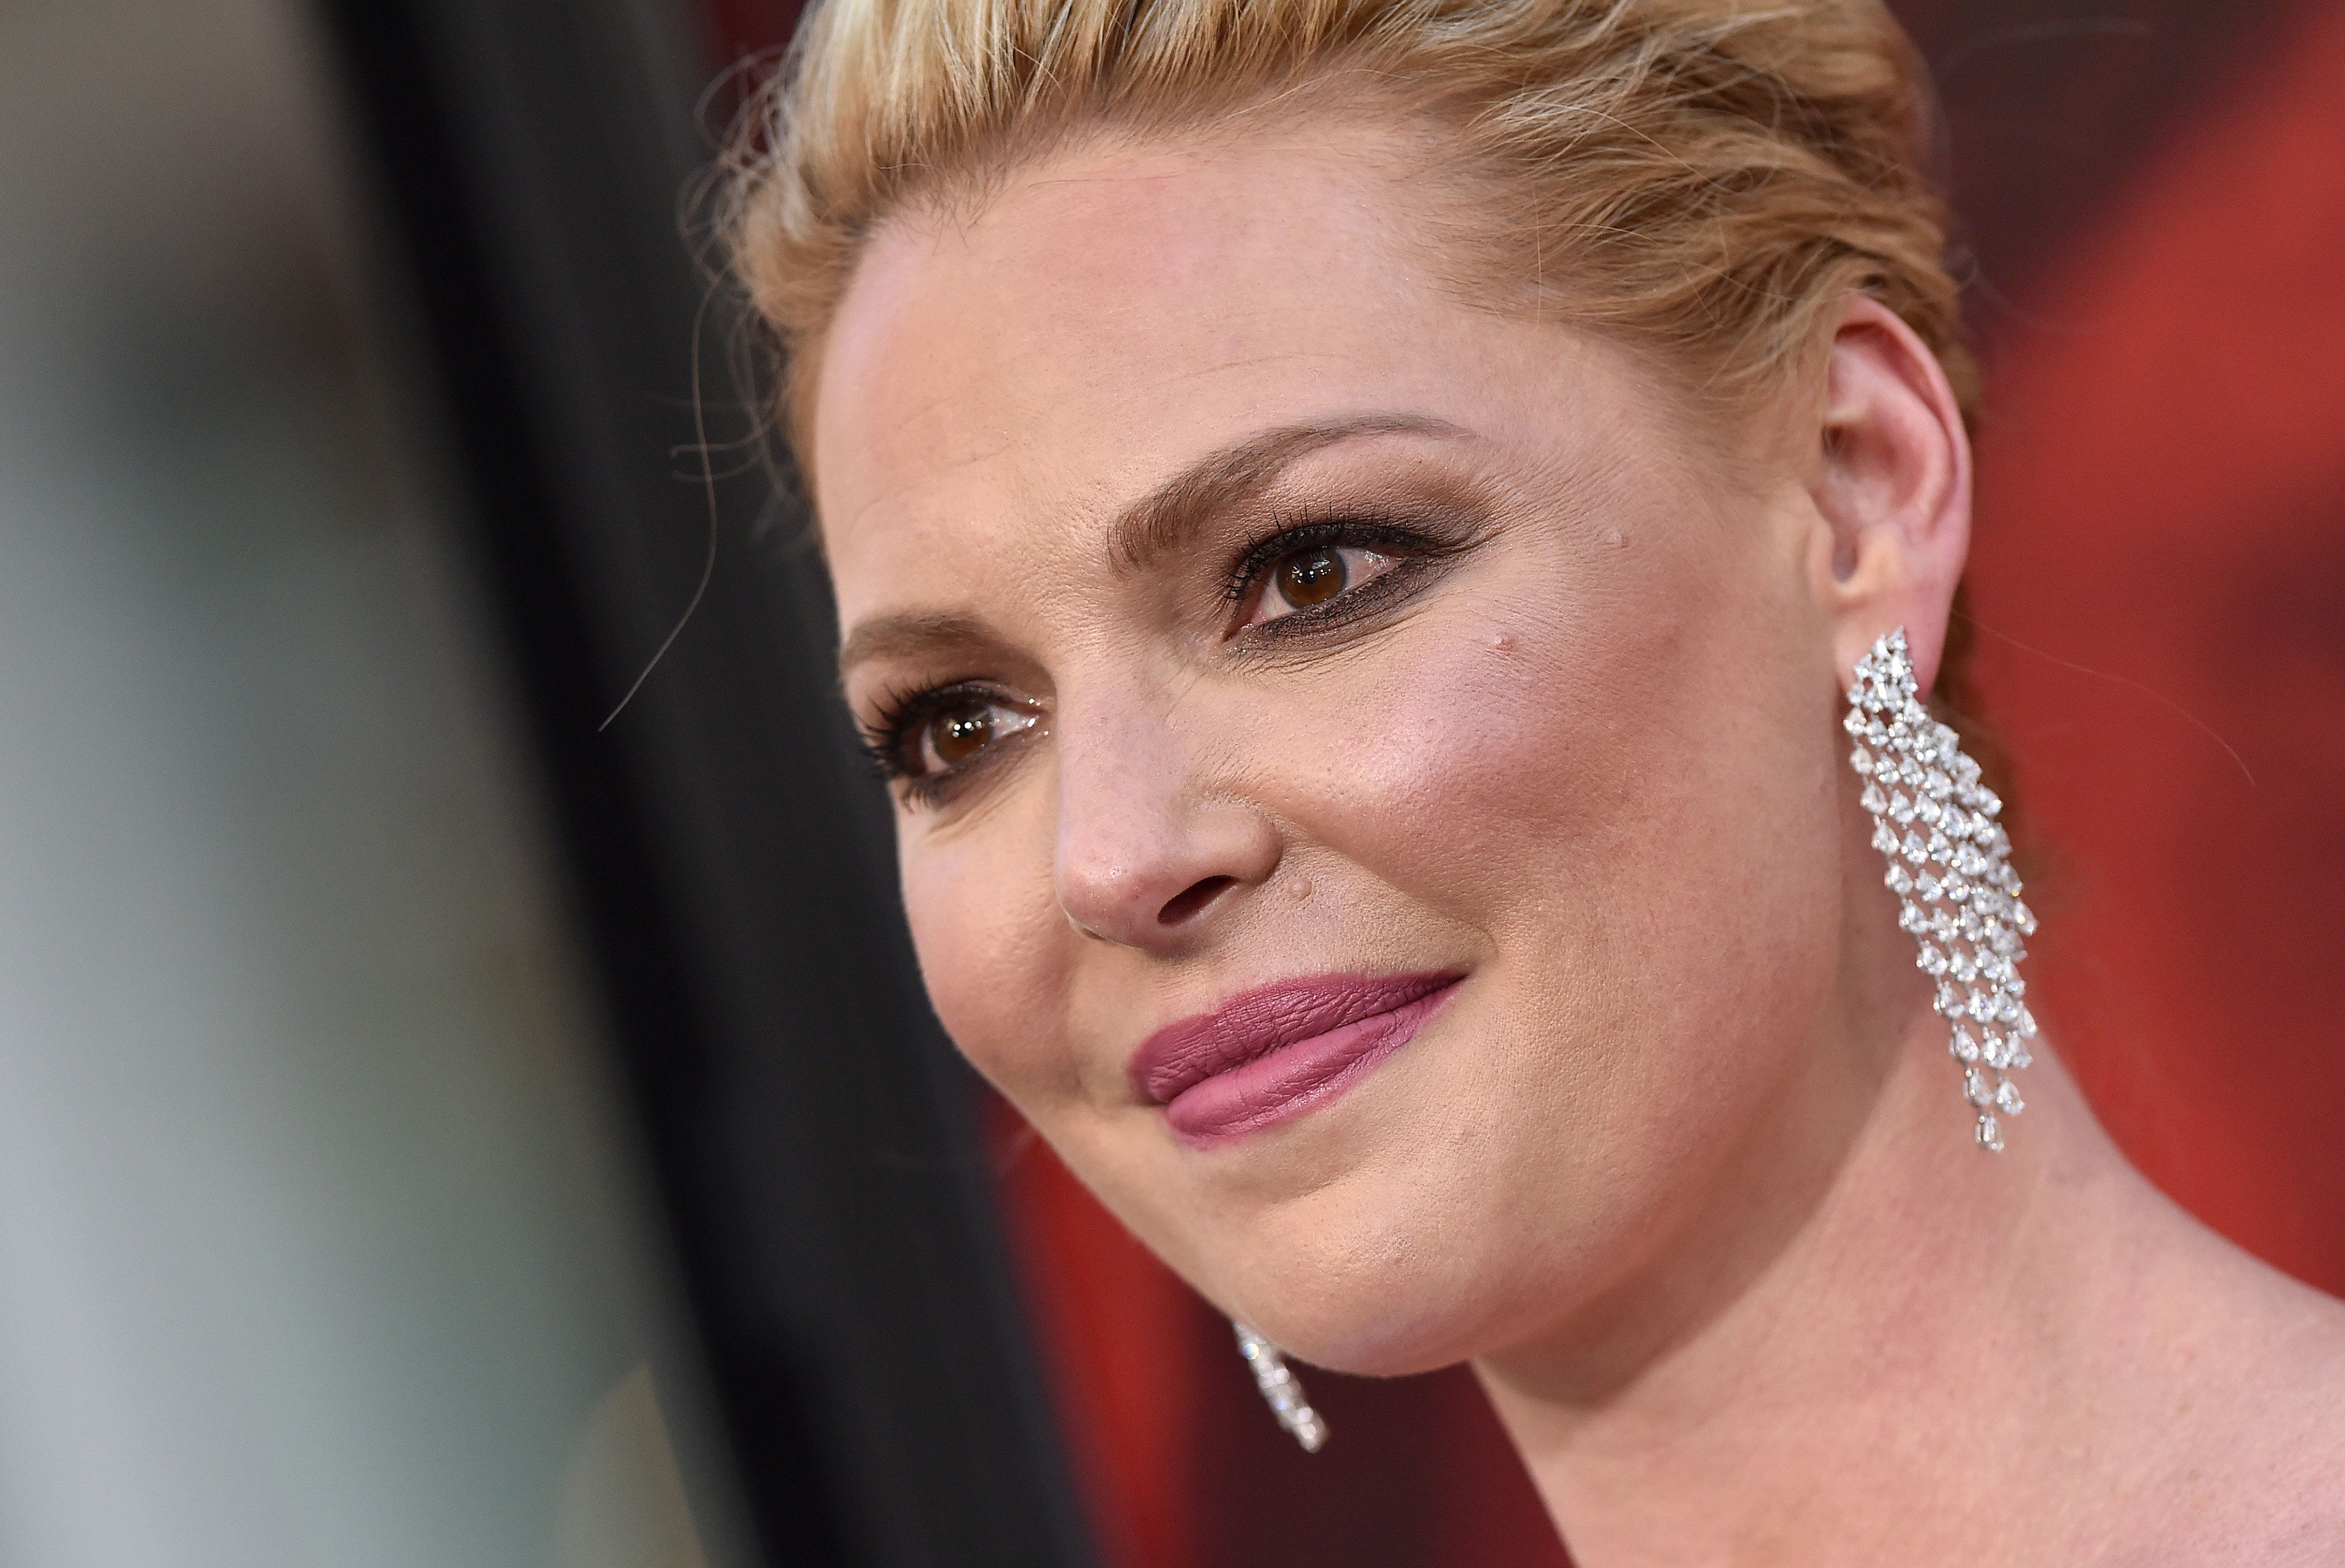 HOLLYWOOD, CA - APRIL 18:  Actress Katherine Heigl arrives at the premiere of Warner Bros. Pictures' 'Unforgettable' at TCL Chinese Theatre on April 18, 2017 in Hollywood, California.  (Photo by Axelle/Bauer-Griffin/FilmMagic)